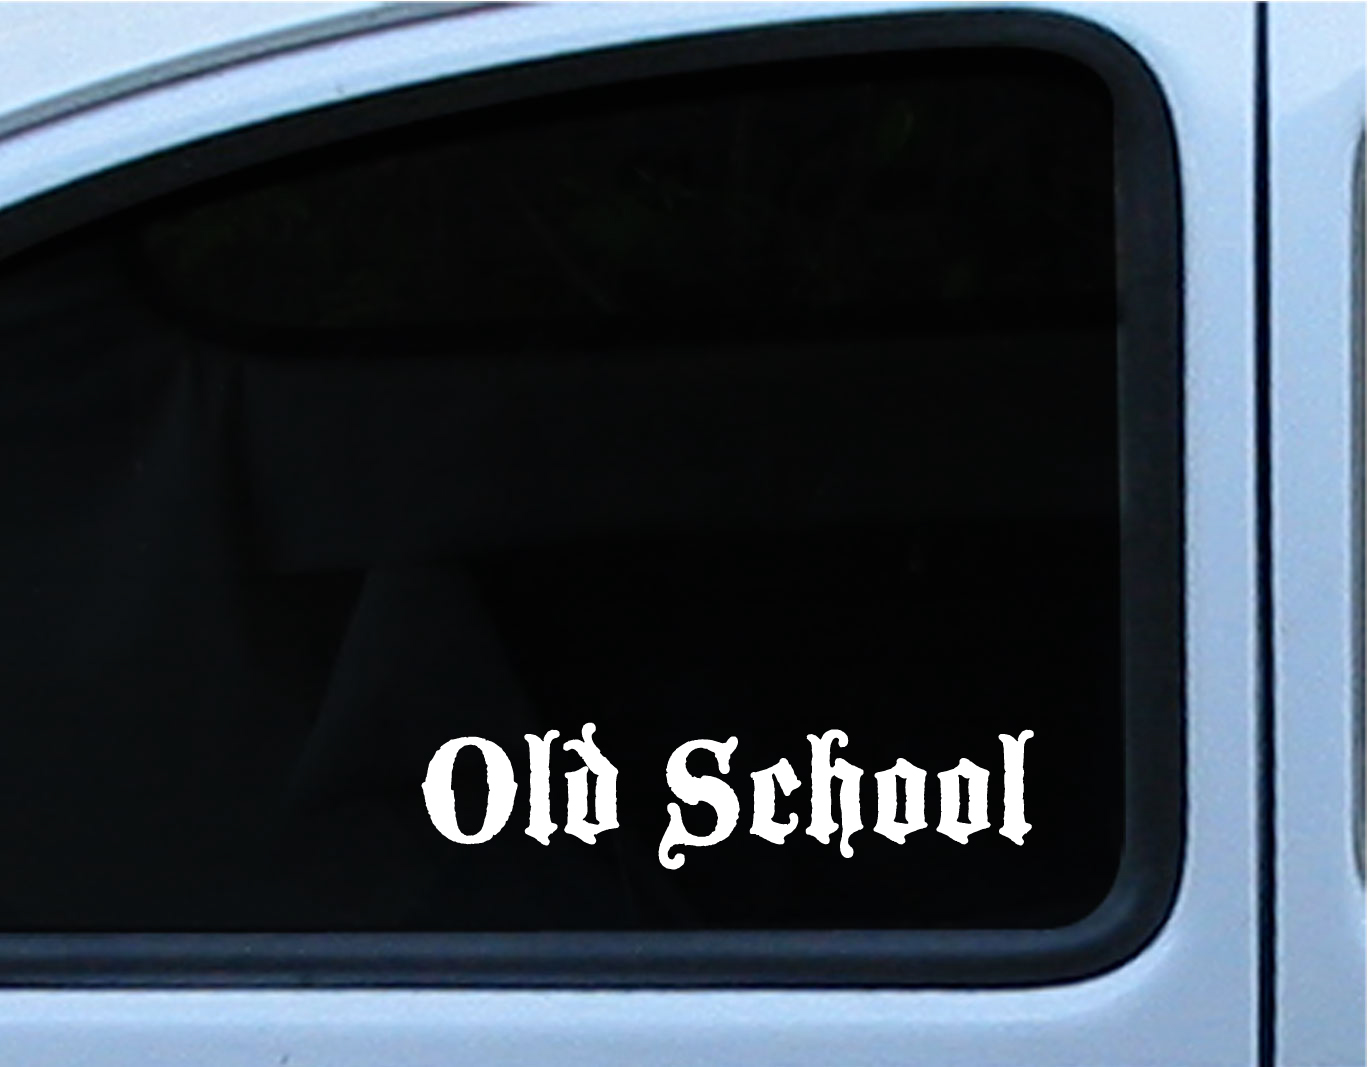 Old School Old English Vinyl Decal Logo 8 5 Quot Vw Chevy Ford